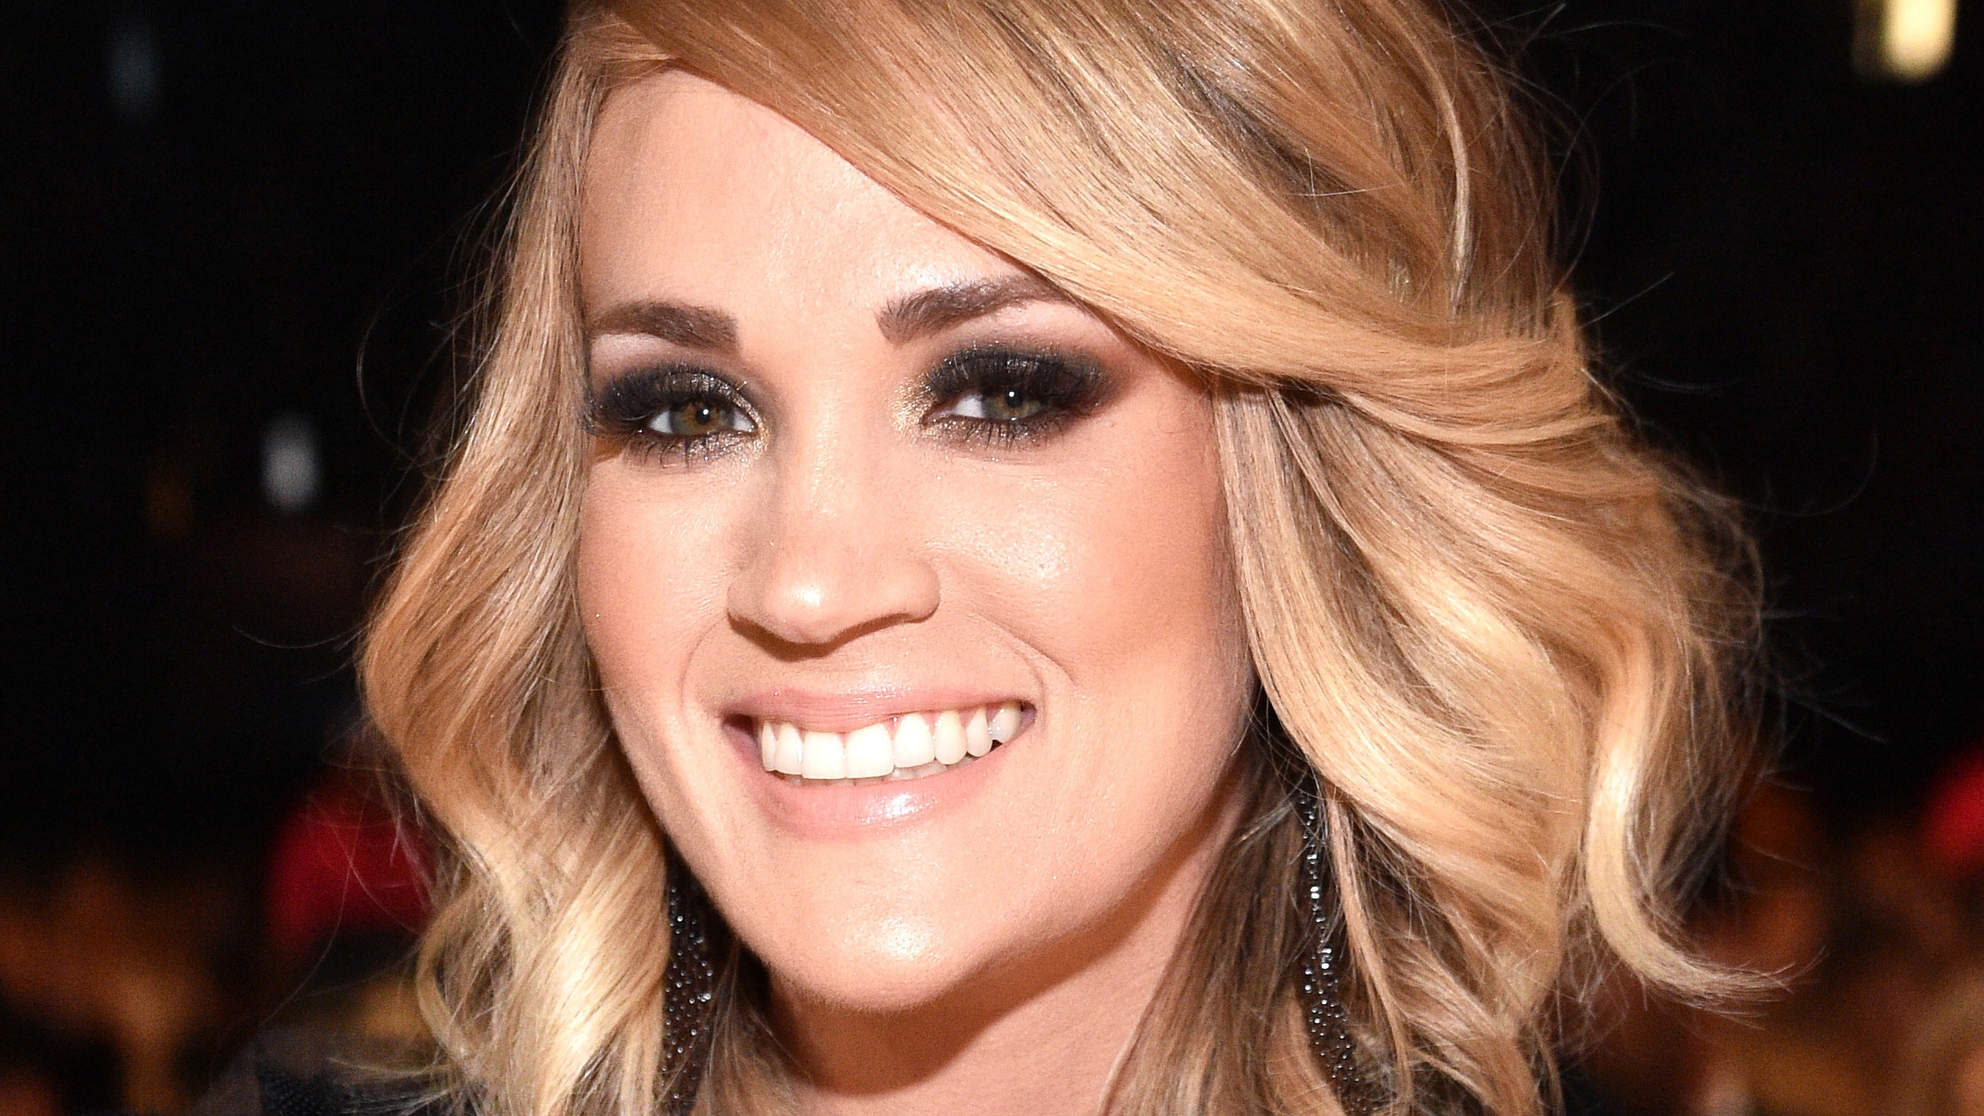 Carrie Underwood's Comments on Having a Baby After the Age of 35 Leave Fans Divided